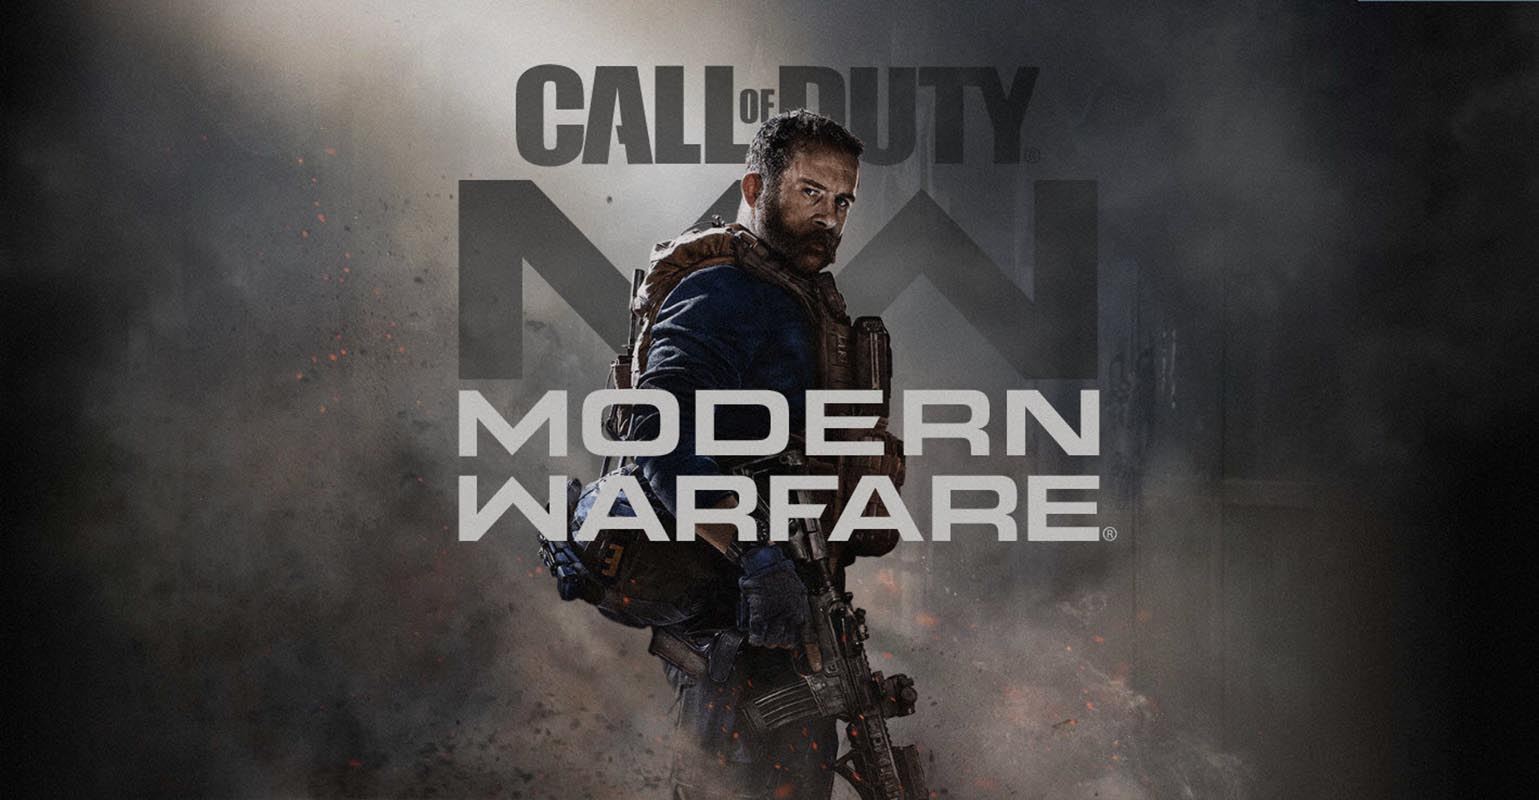 Activision Wants Reddit To Id User Who Leaked Call Of Duty Image Slashgear